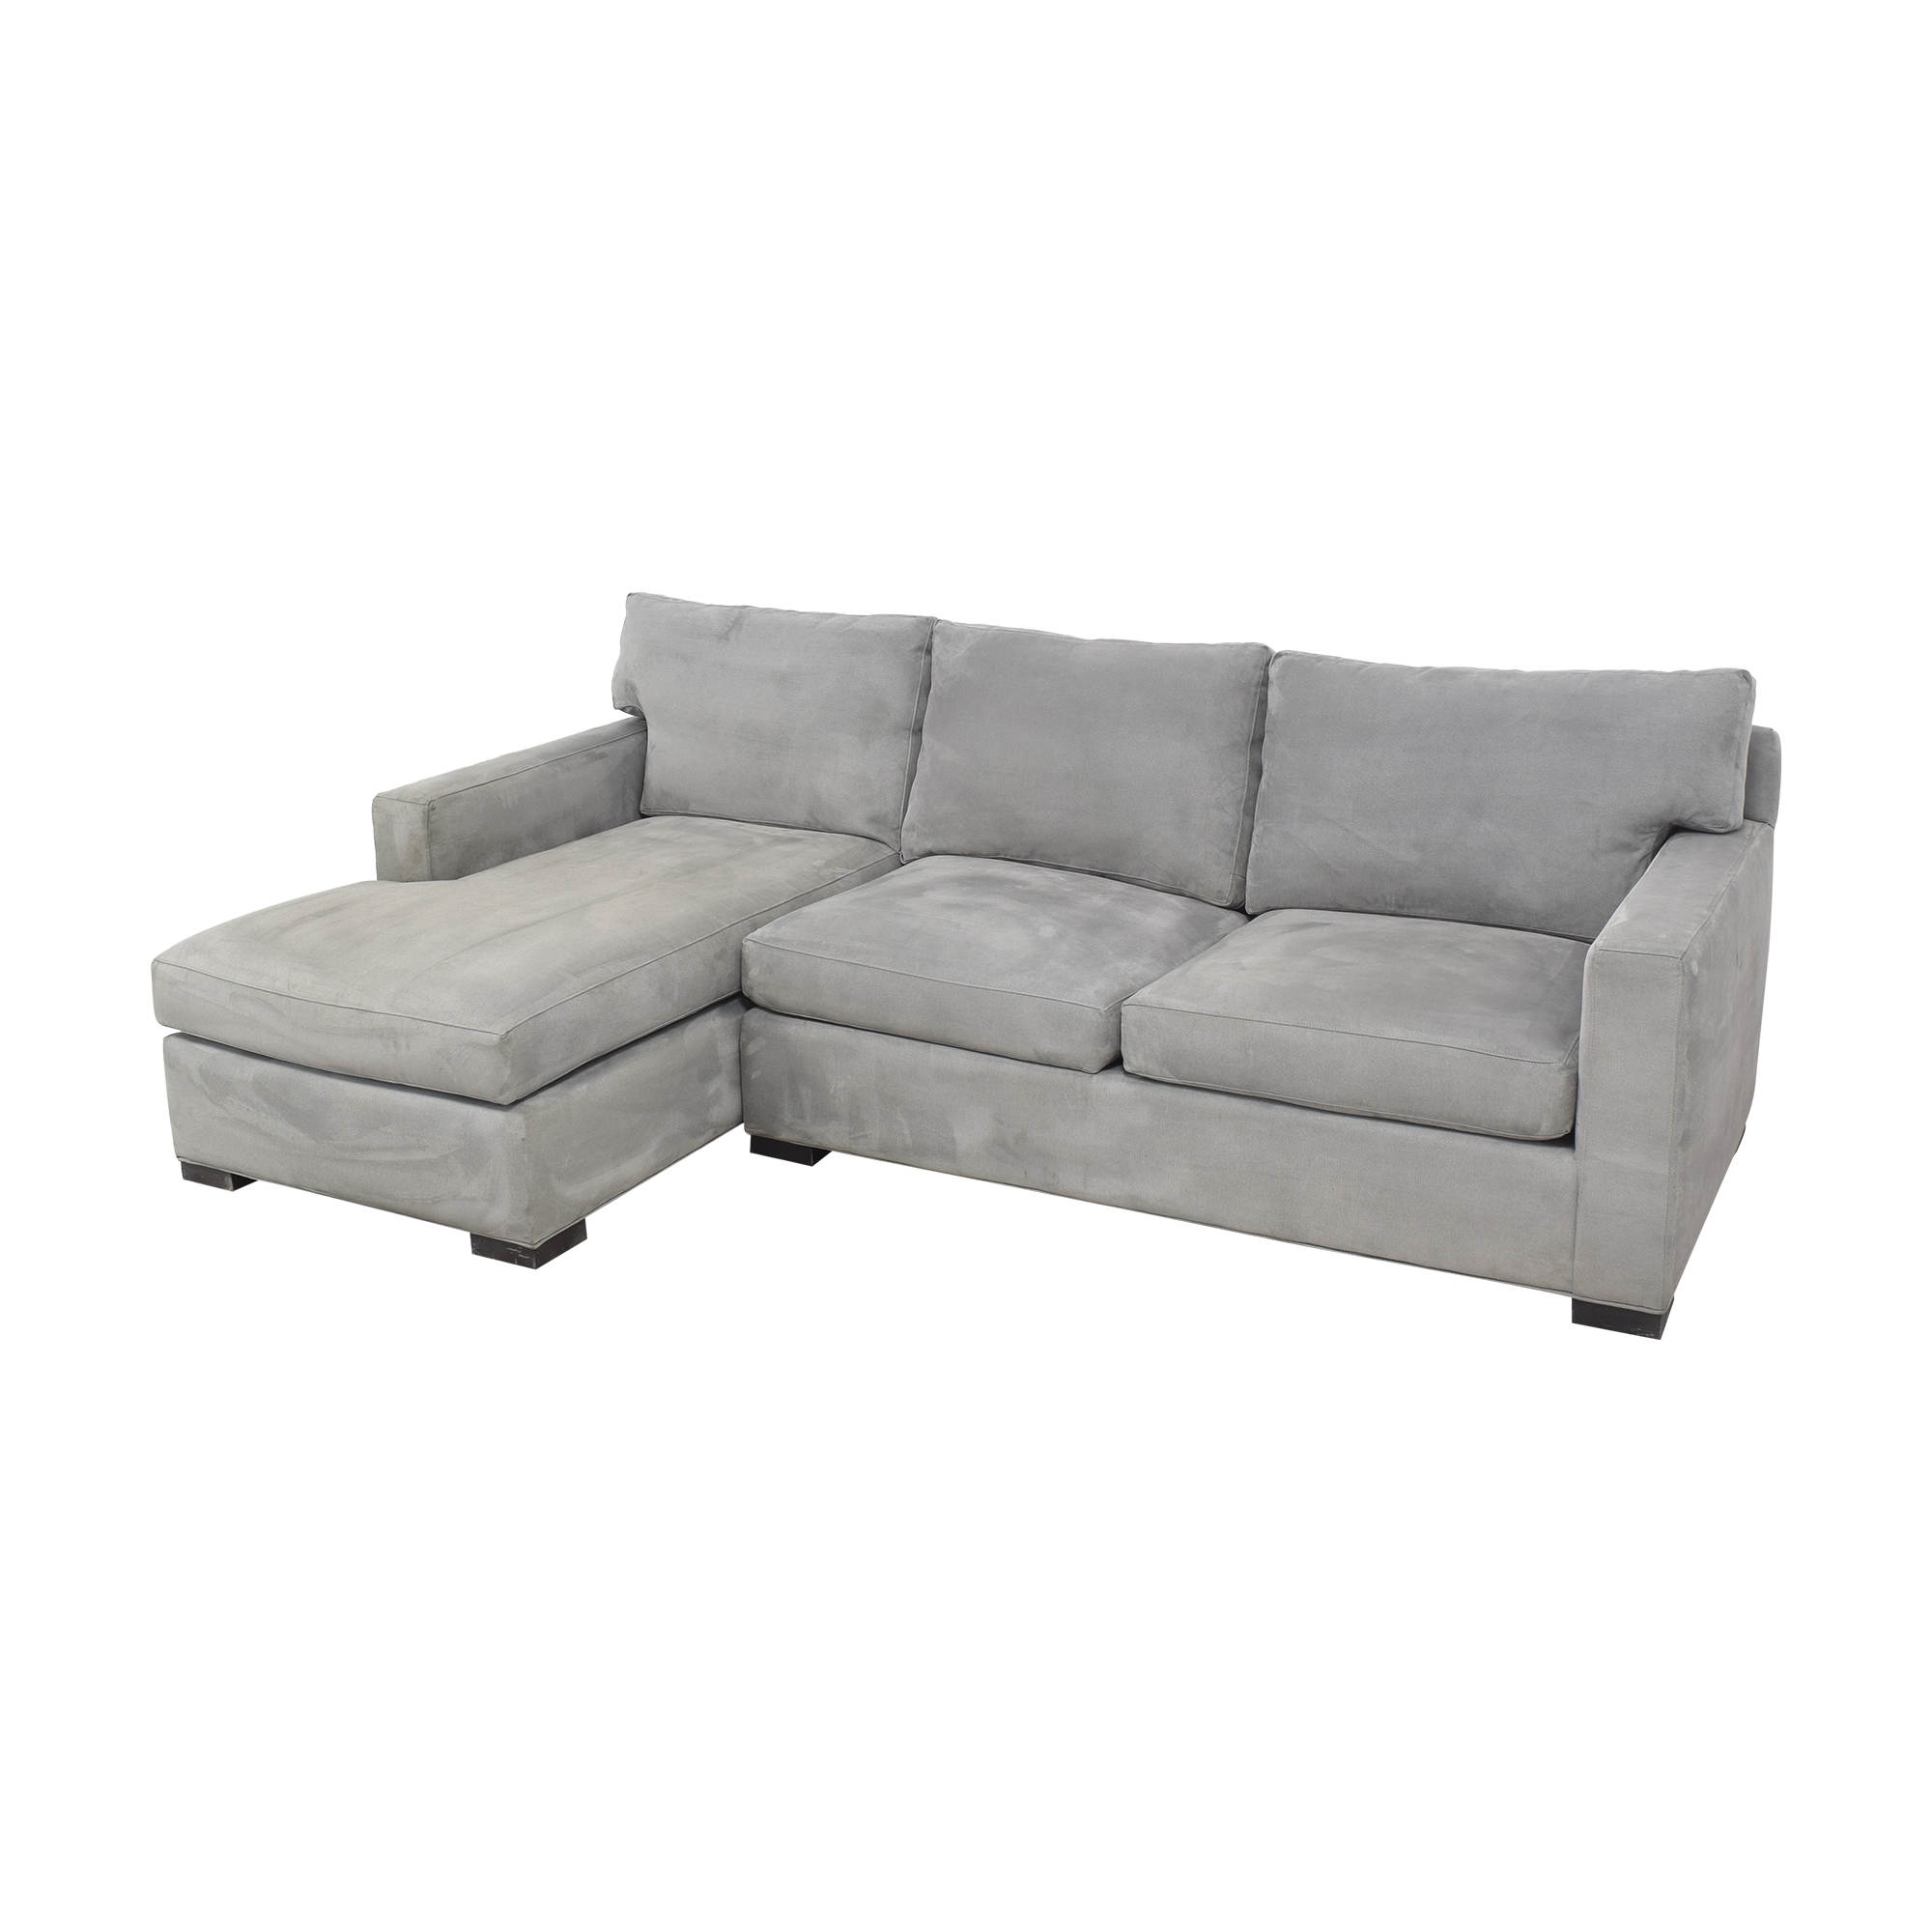 Crate & Barrel Crate & Barrel Axis II Chaise Sectional Sofa second hand